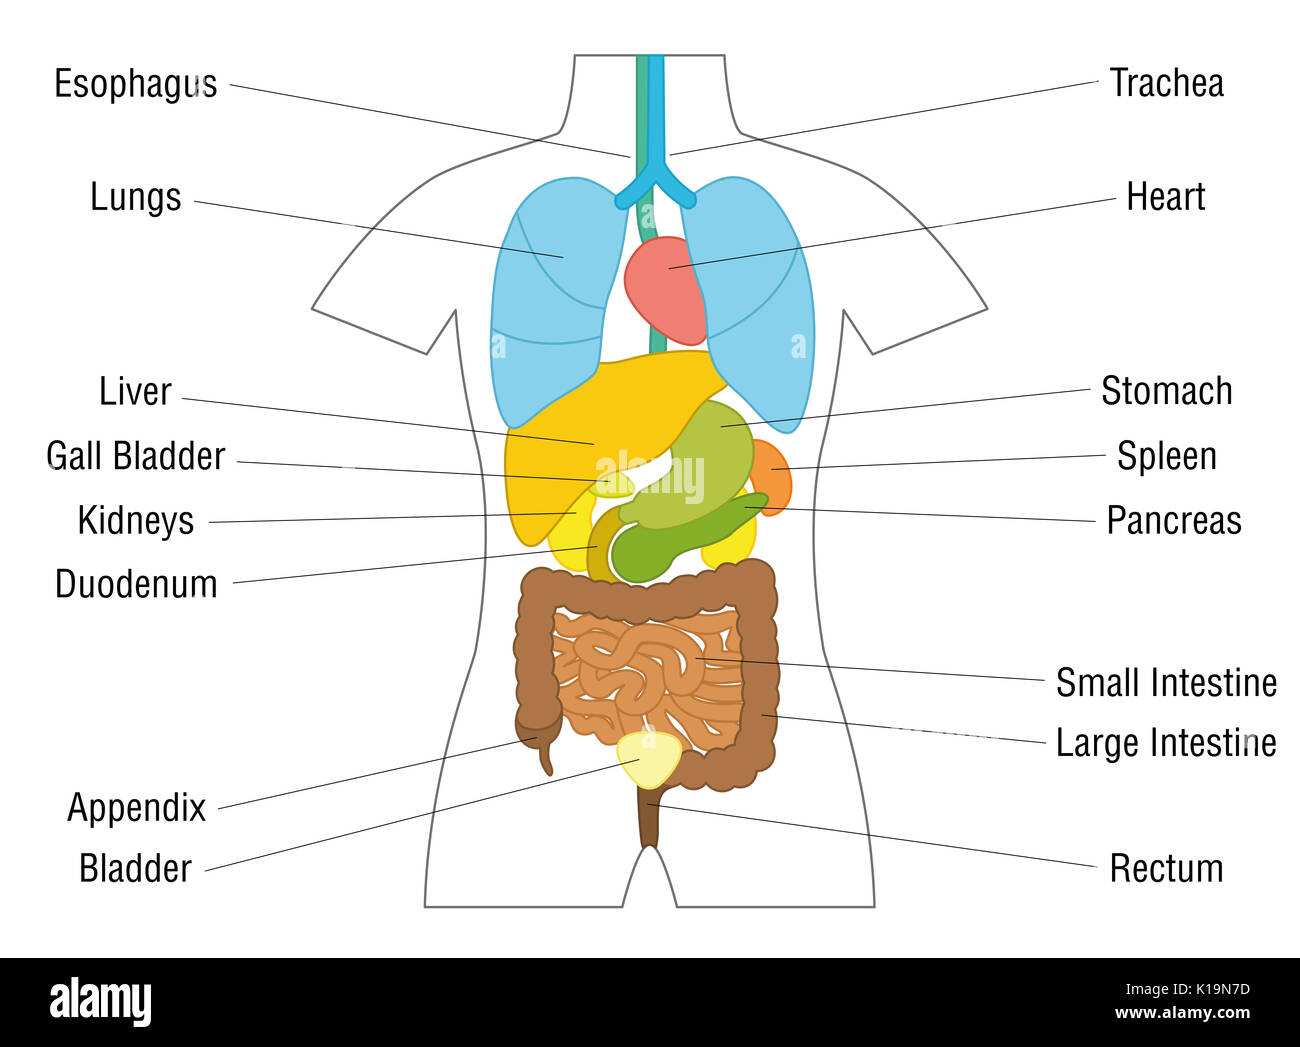 Organs Diagram Stock Photos Organs Diagram Stock Images Alamy